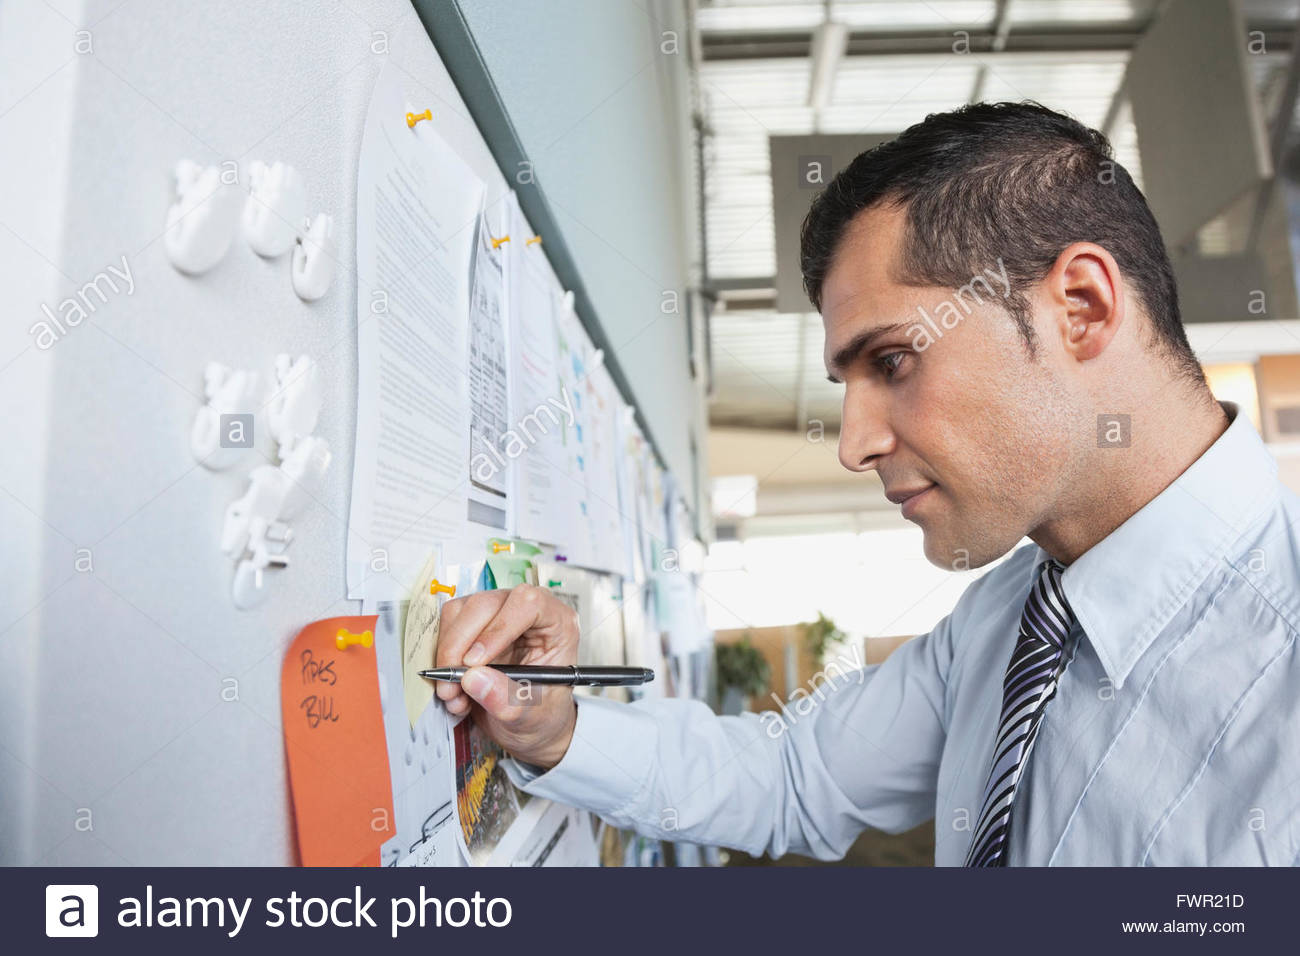 Businessman writing on notice board in office - Stock Image